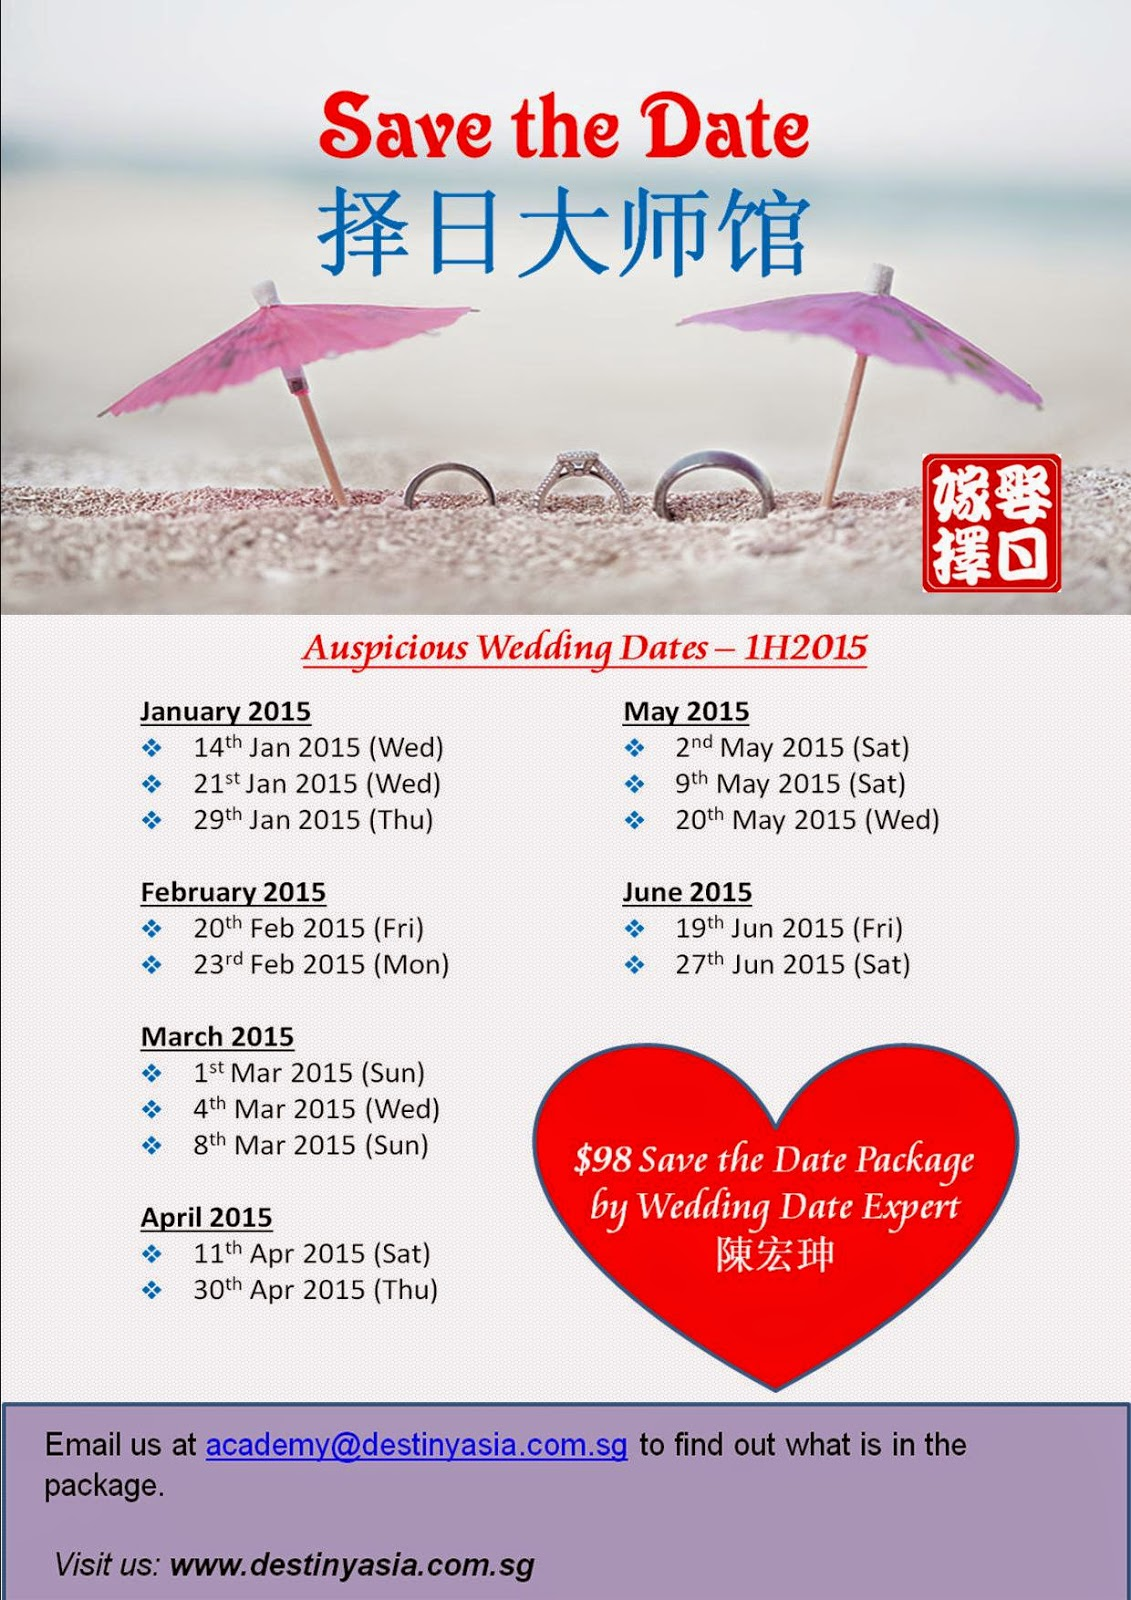 Auspicious wedding dates for 2015